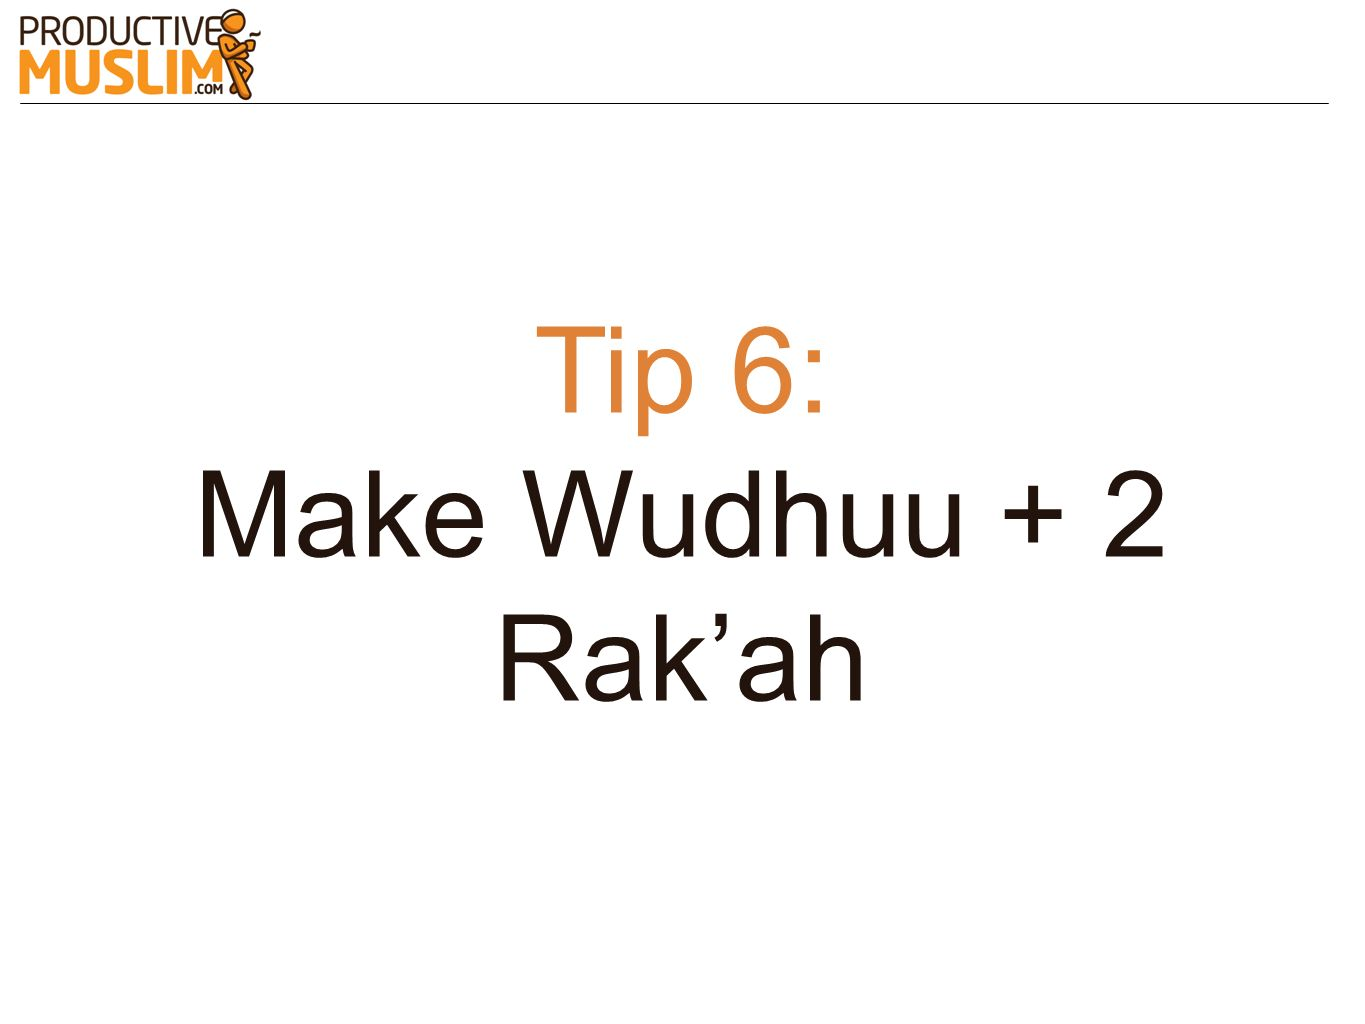 Tip 6: Make Wudhuu + 2 Rak'ah